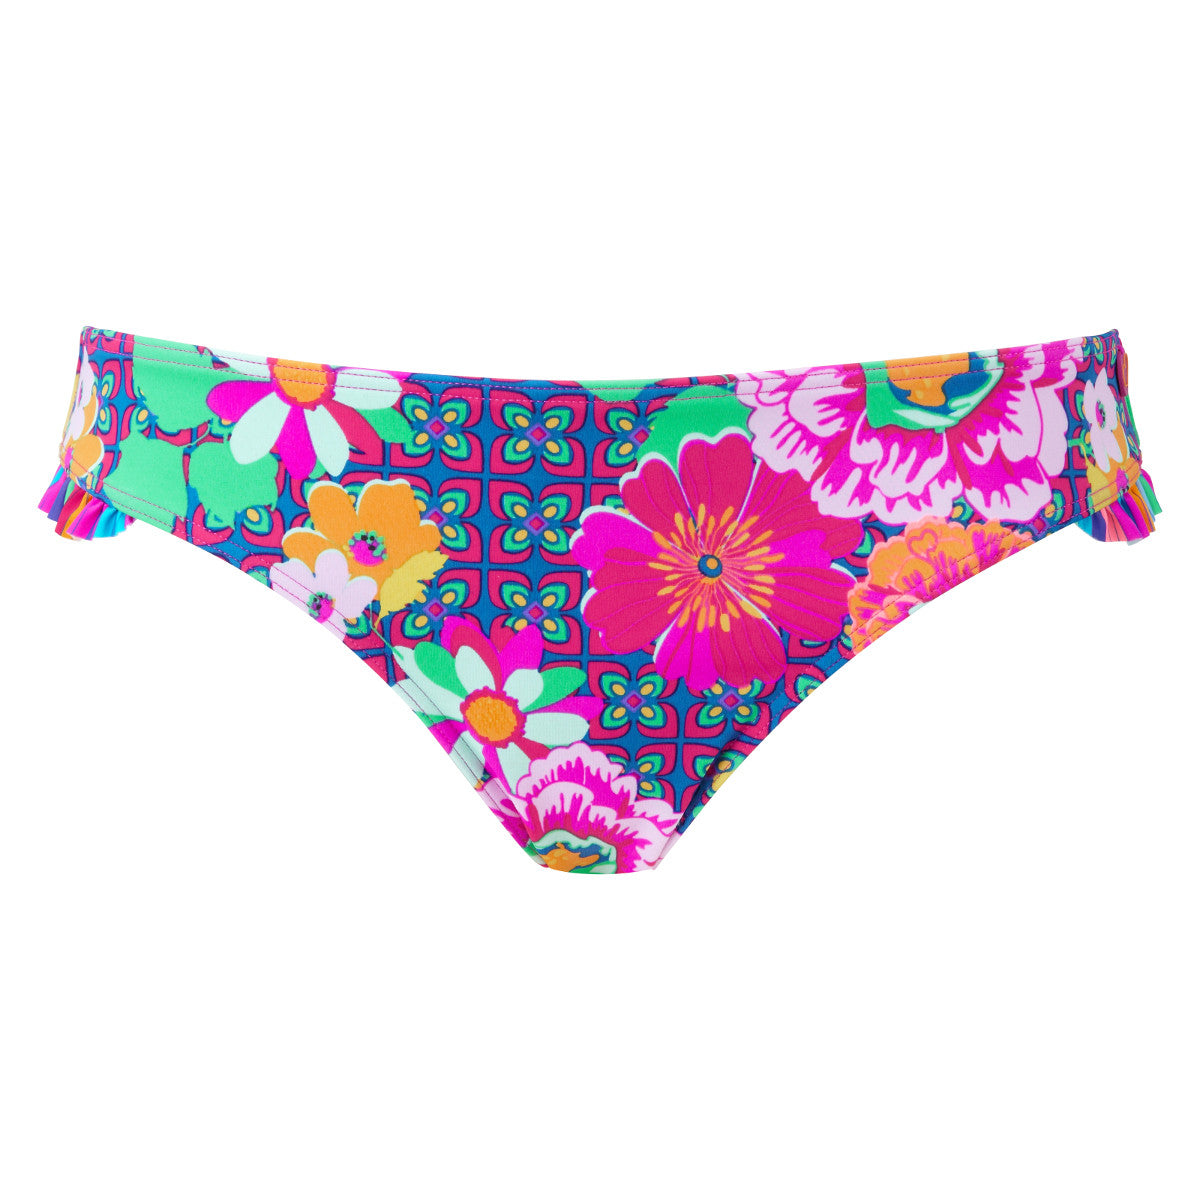 9d83e59ce9 Lepel Swim Sun Kiss Floral Print Low Rise Frill Bikini Brief Pant ...